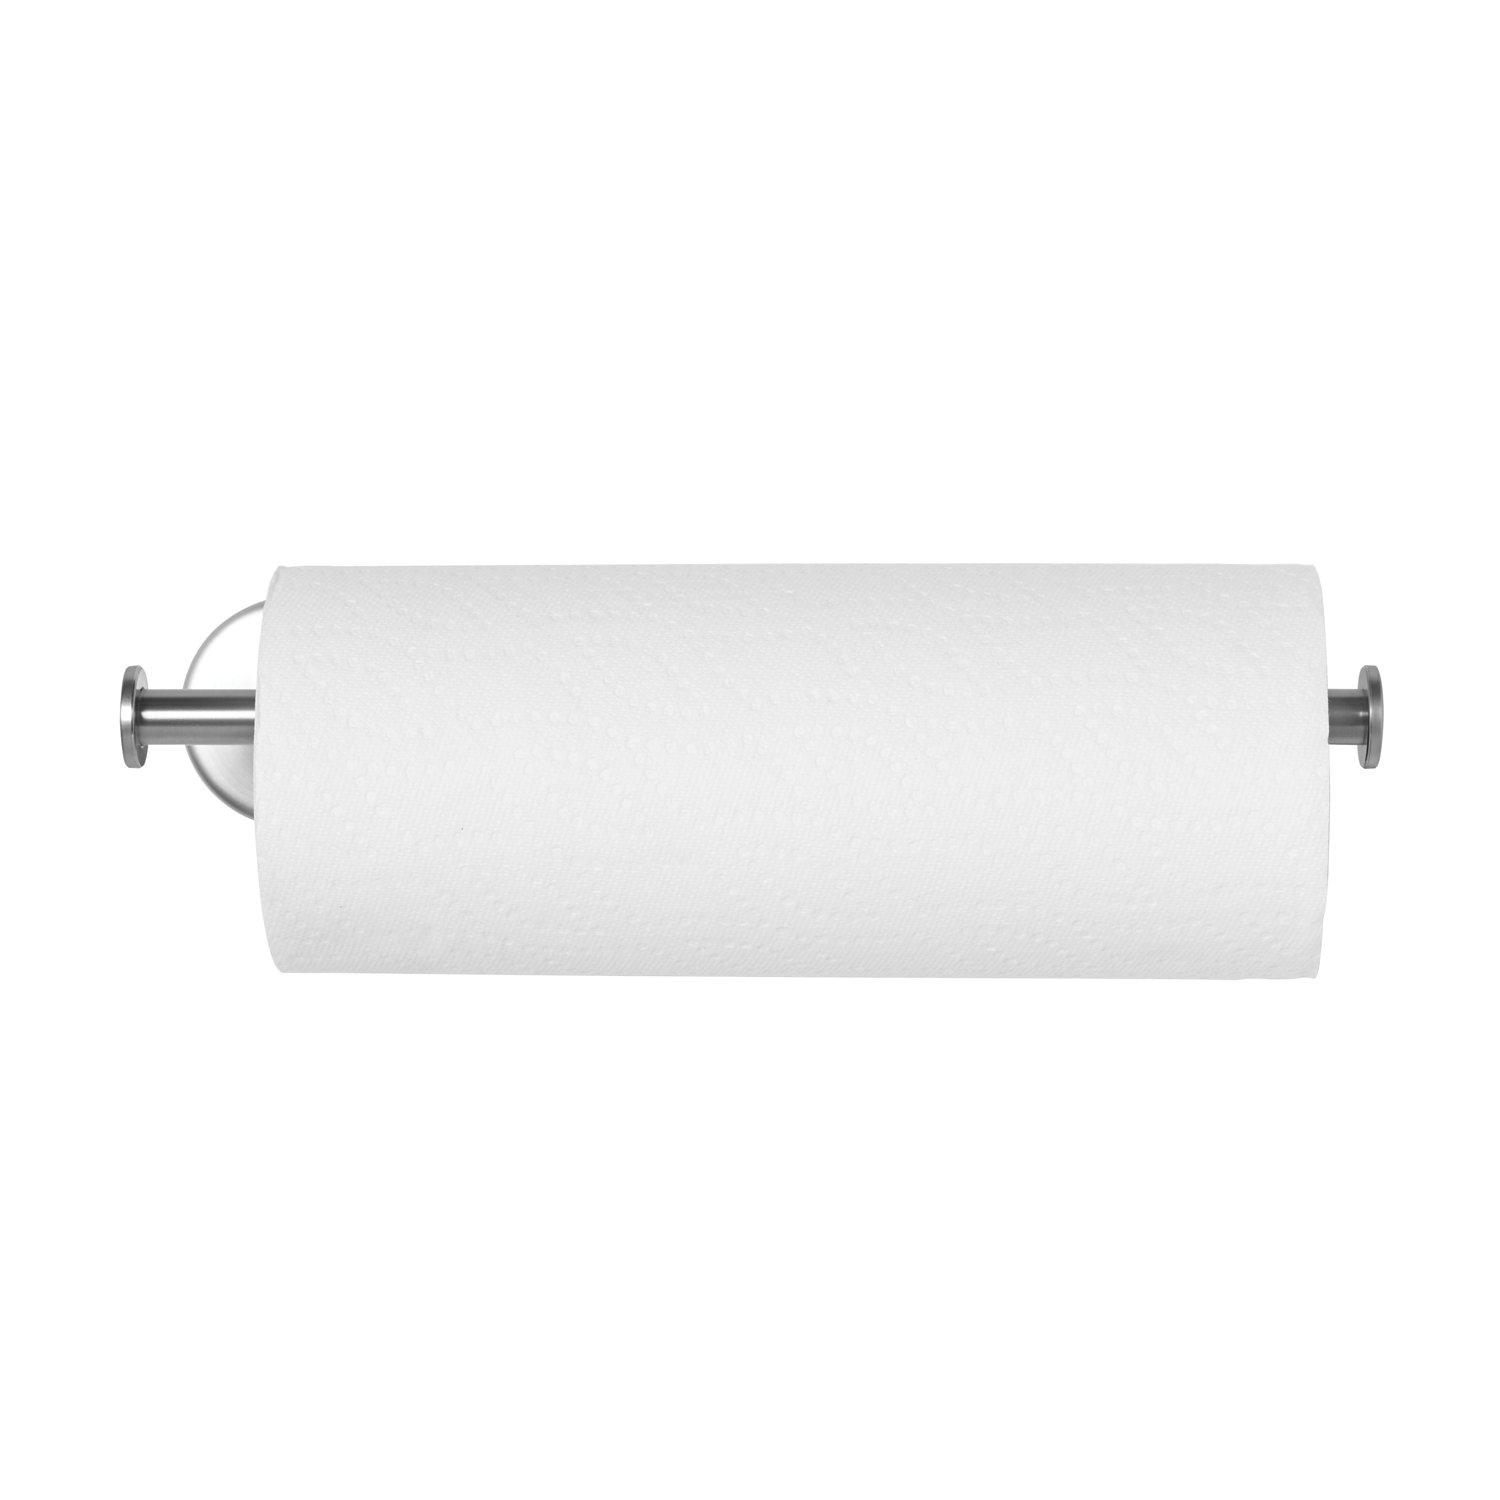 Paper Towel Holder - Umbra Wall Mount Towel Paper Holder - Elegant Nickel Finish - Heavy Duty to Pull Sheets with One Hand - Fits Most Towel Paper Roll Sizes - Under Cabinet for Kitchen Organization UM-1004327-410